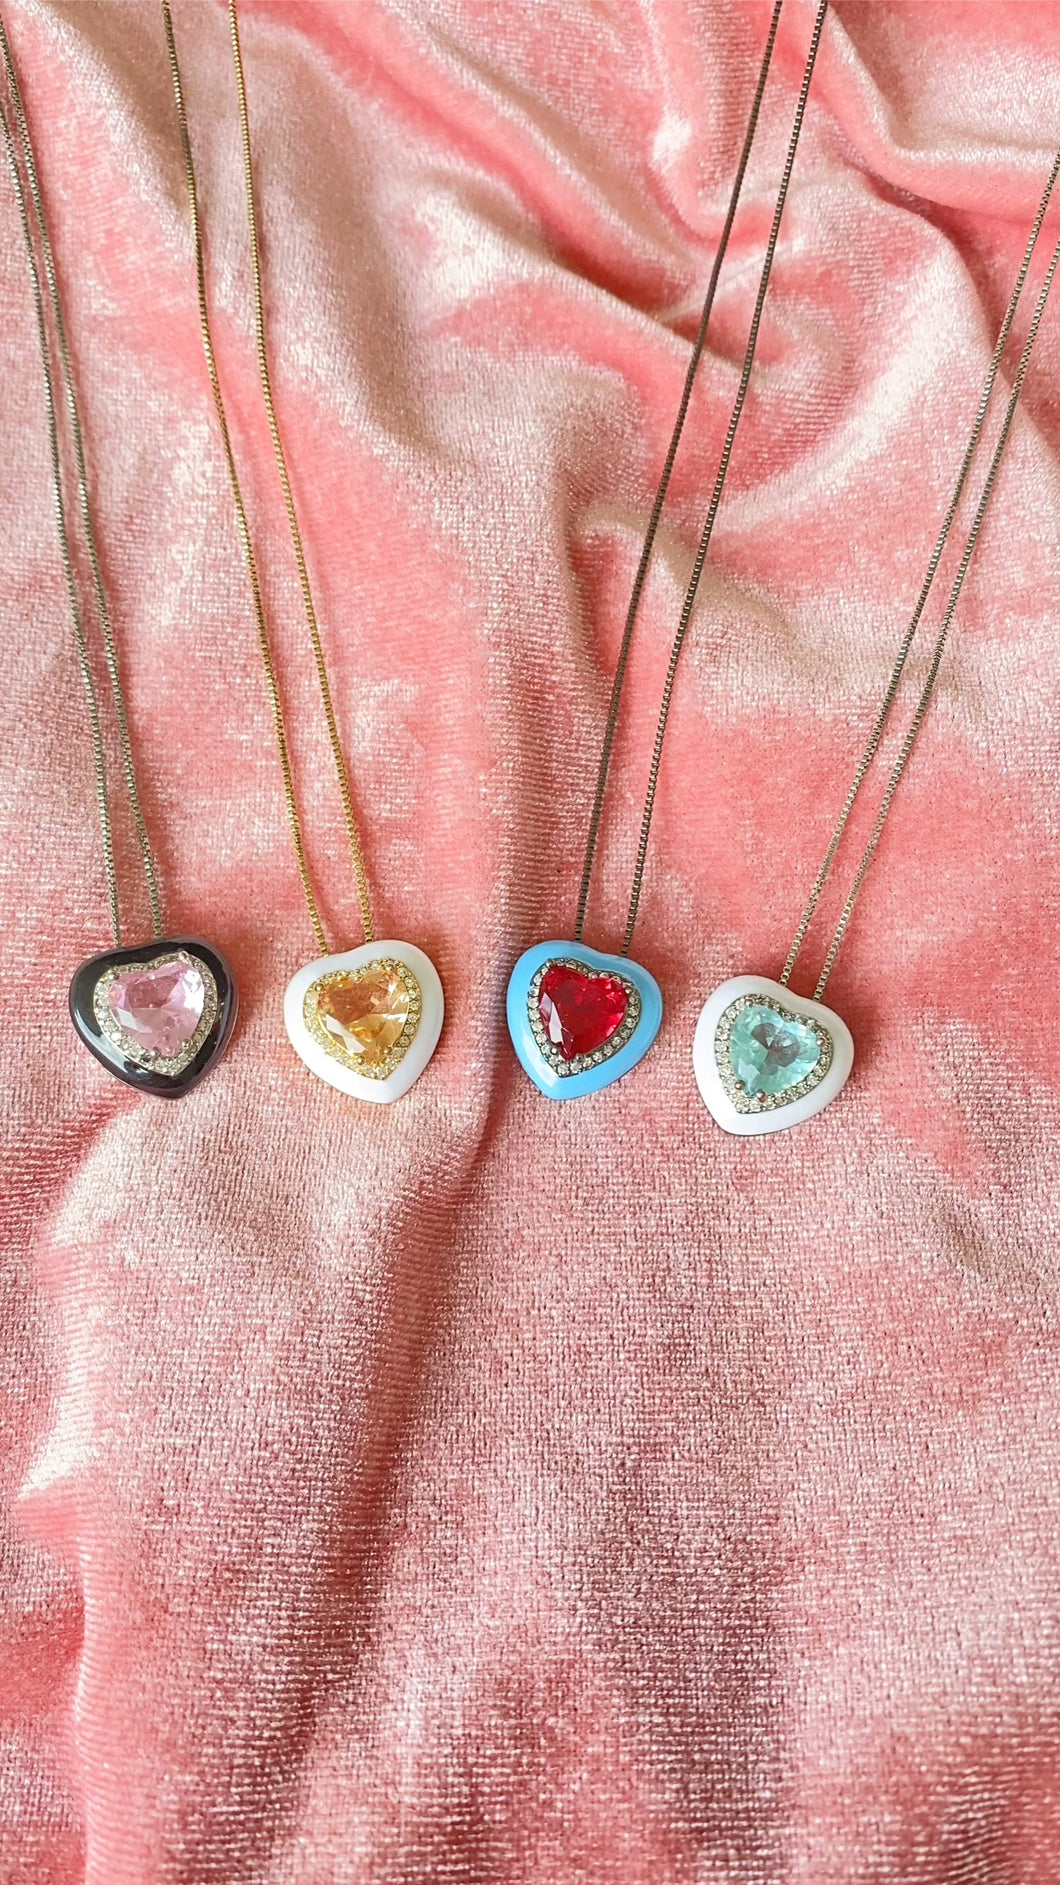 Narbonne Crystal Heart Necklace